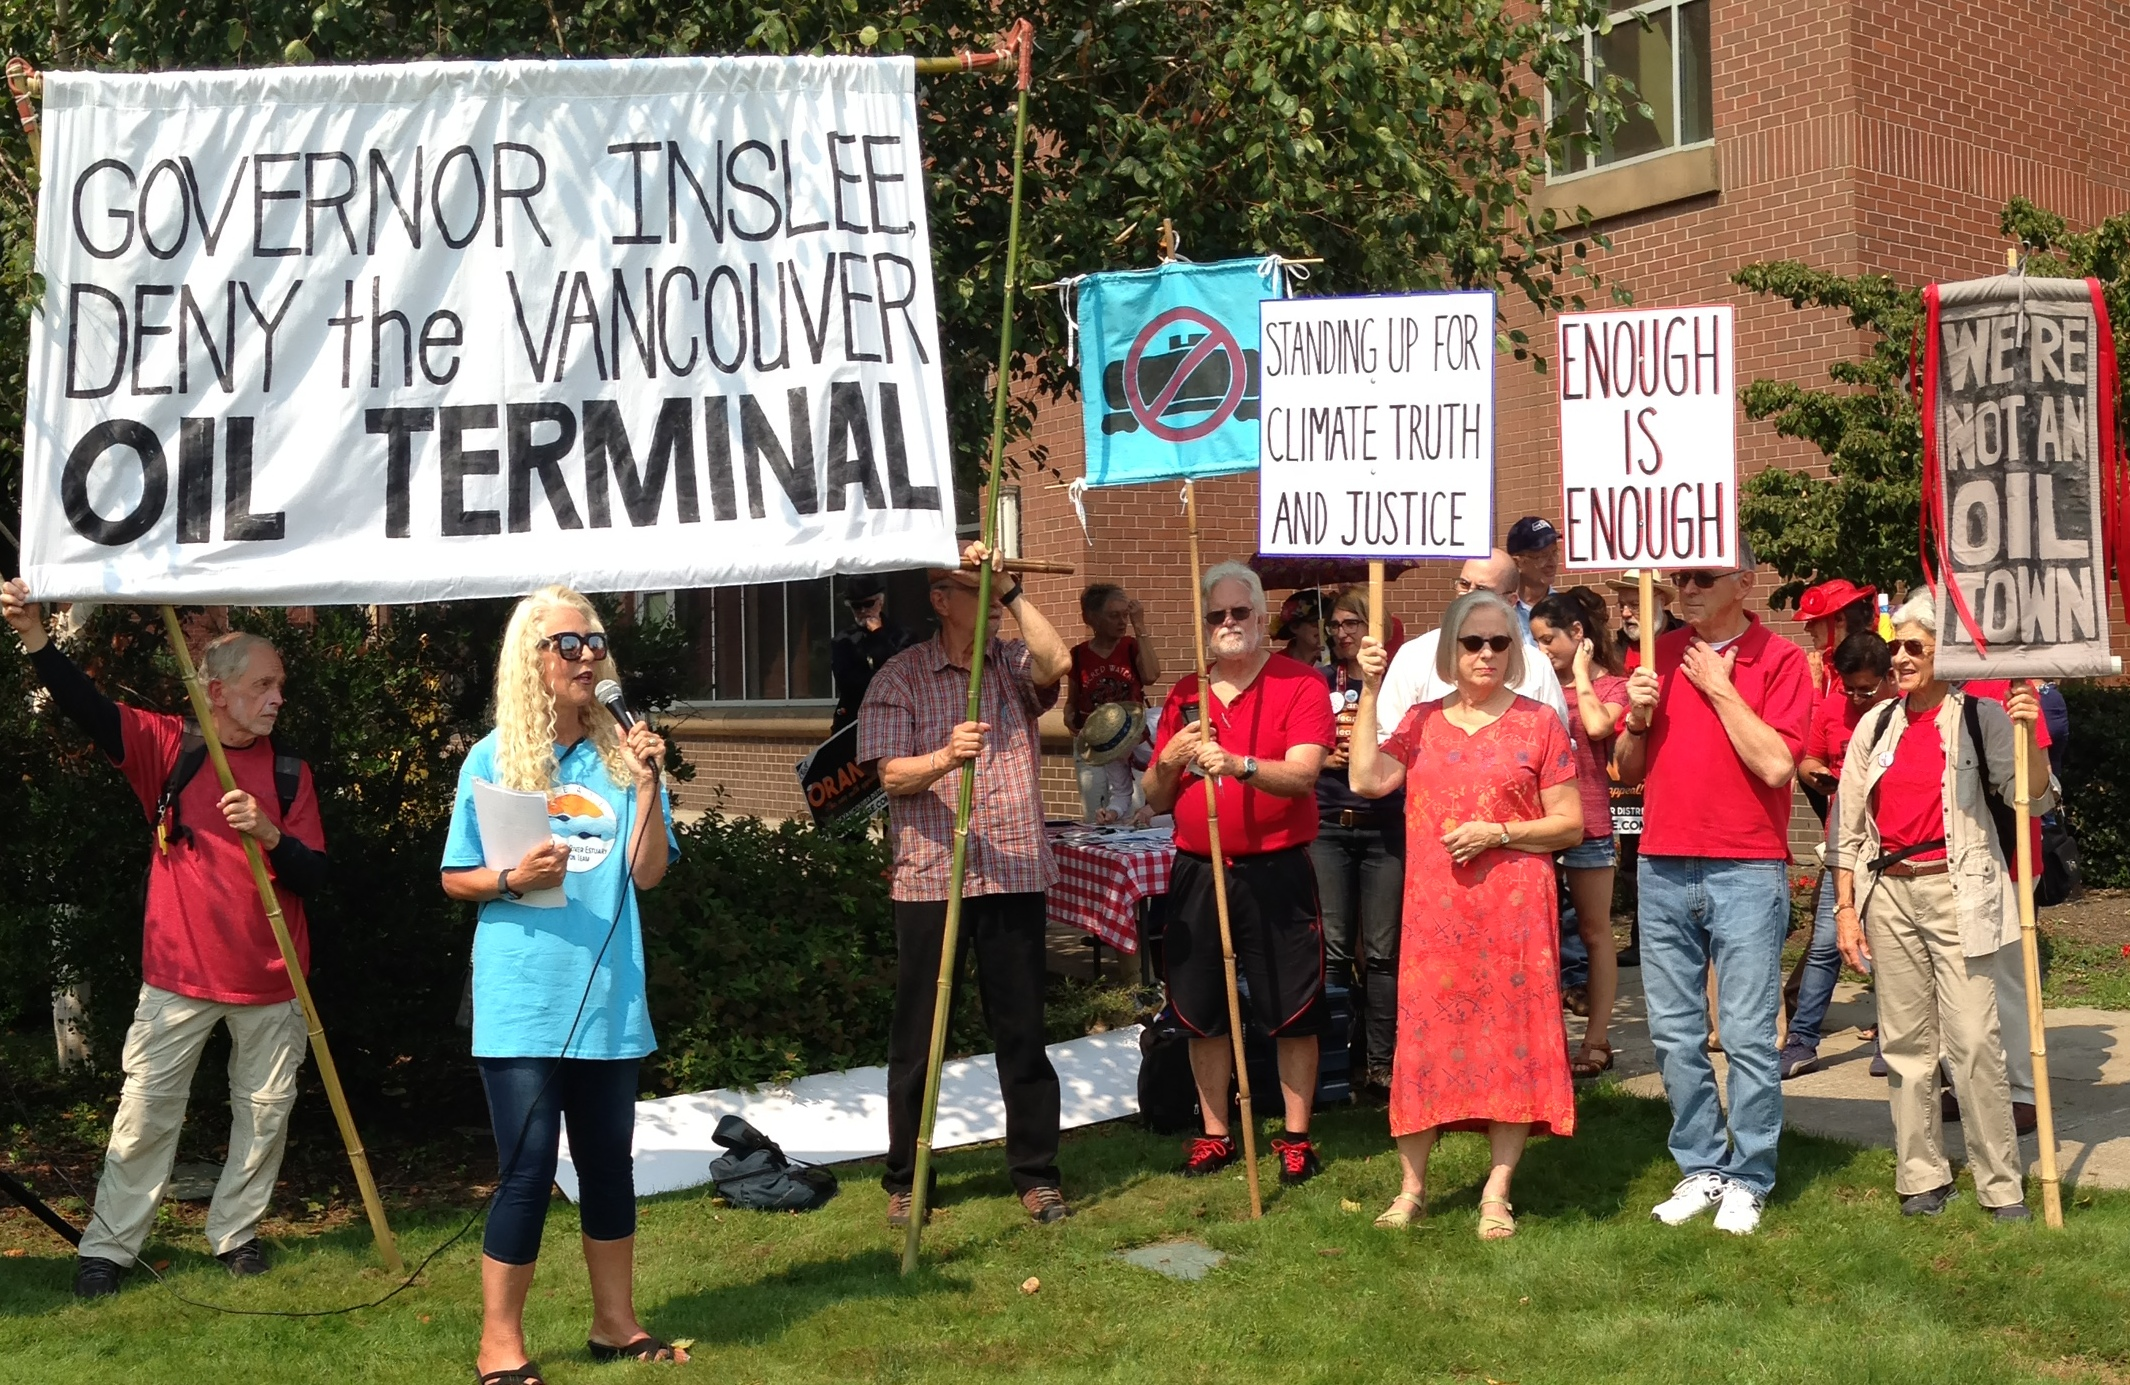 8-29-17_Tesoro_hearing_protest_in_Vancouver_cropped.jpg